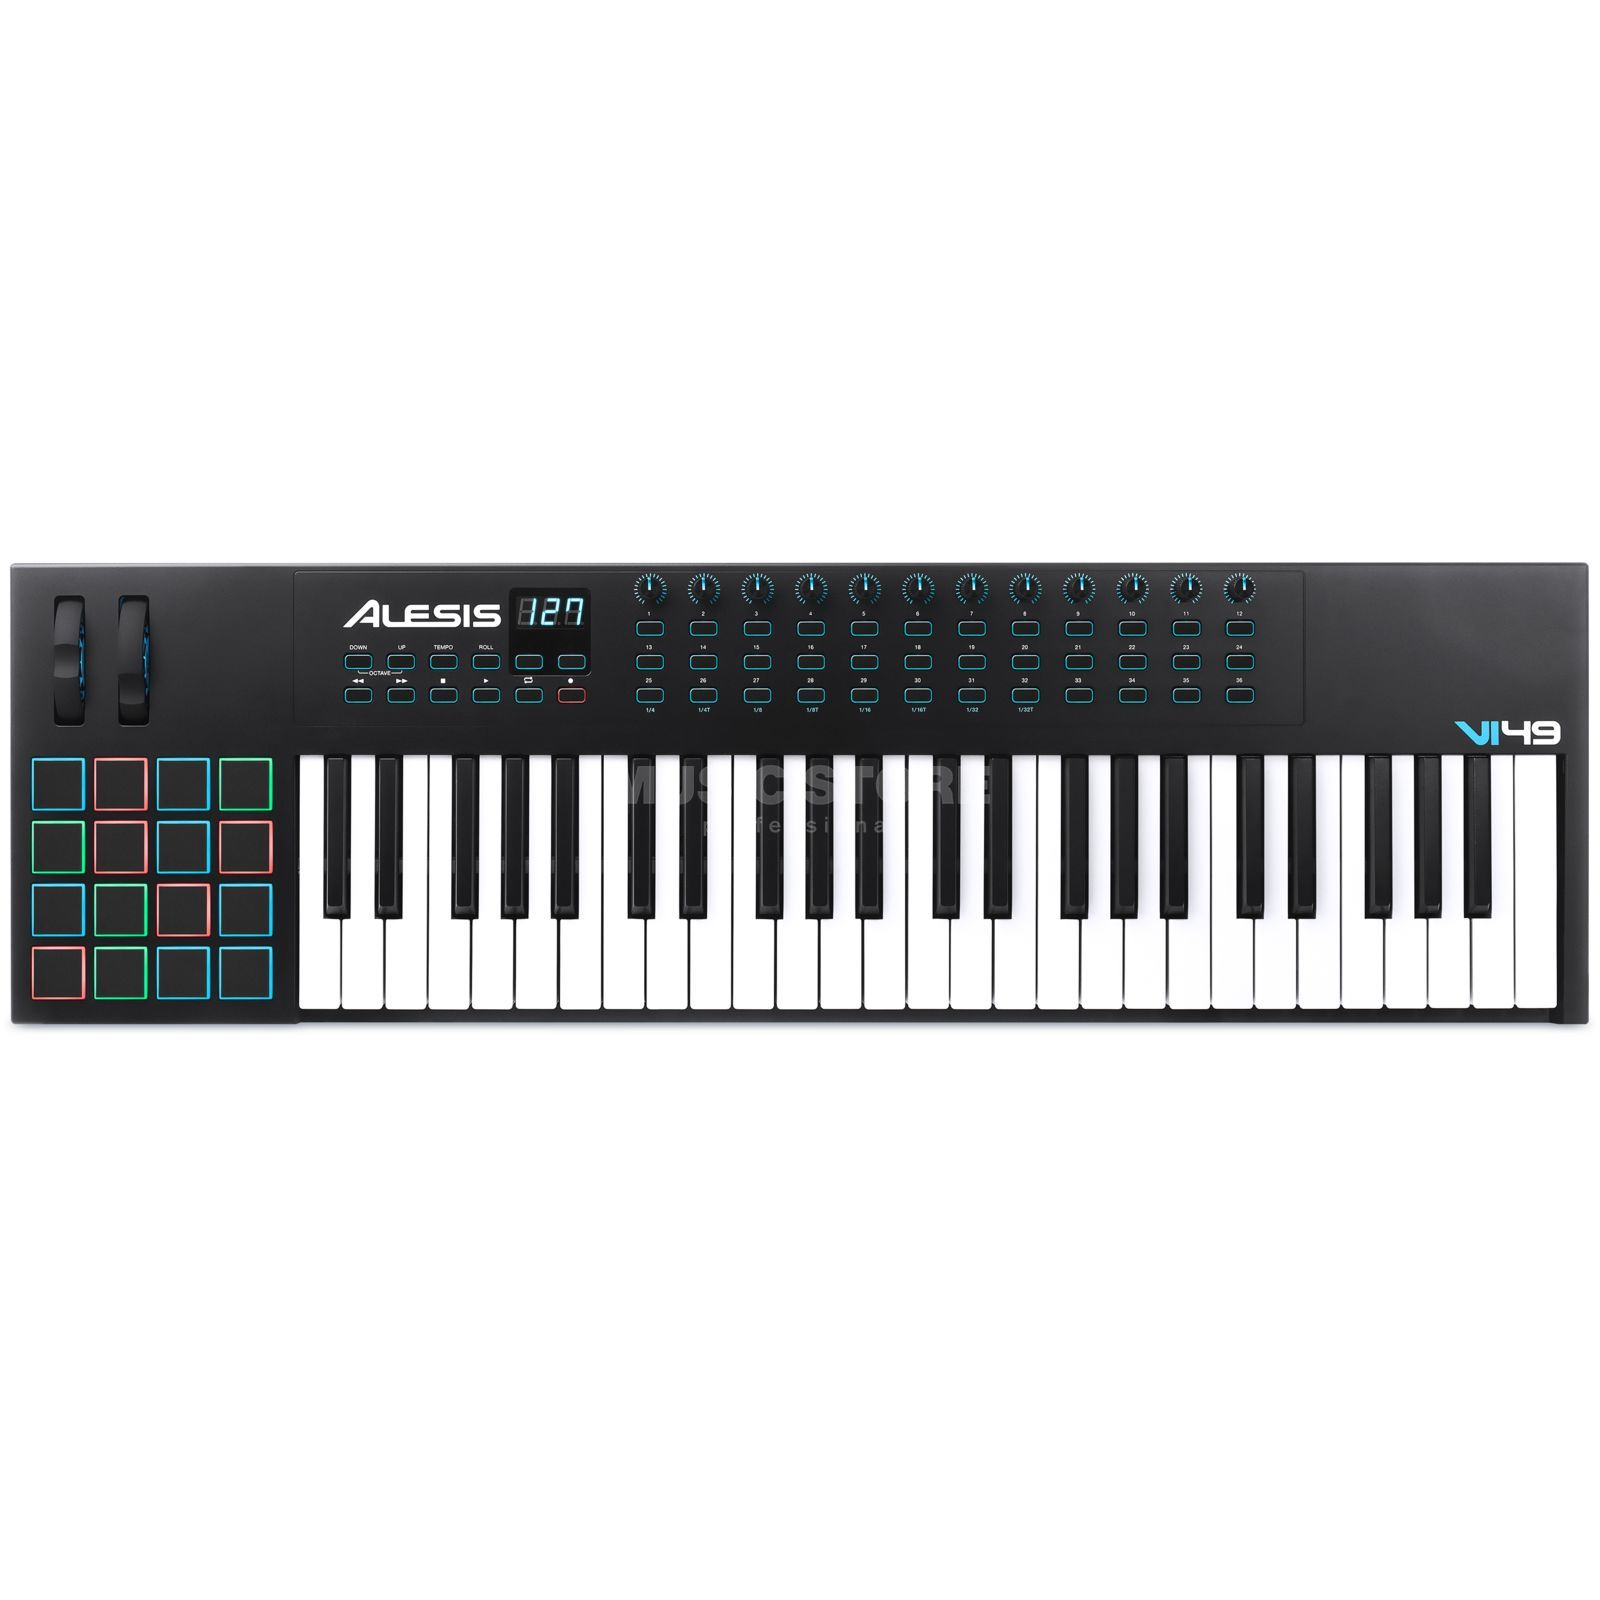 Alesis VI 49 USB Controller Keyboard Product Image